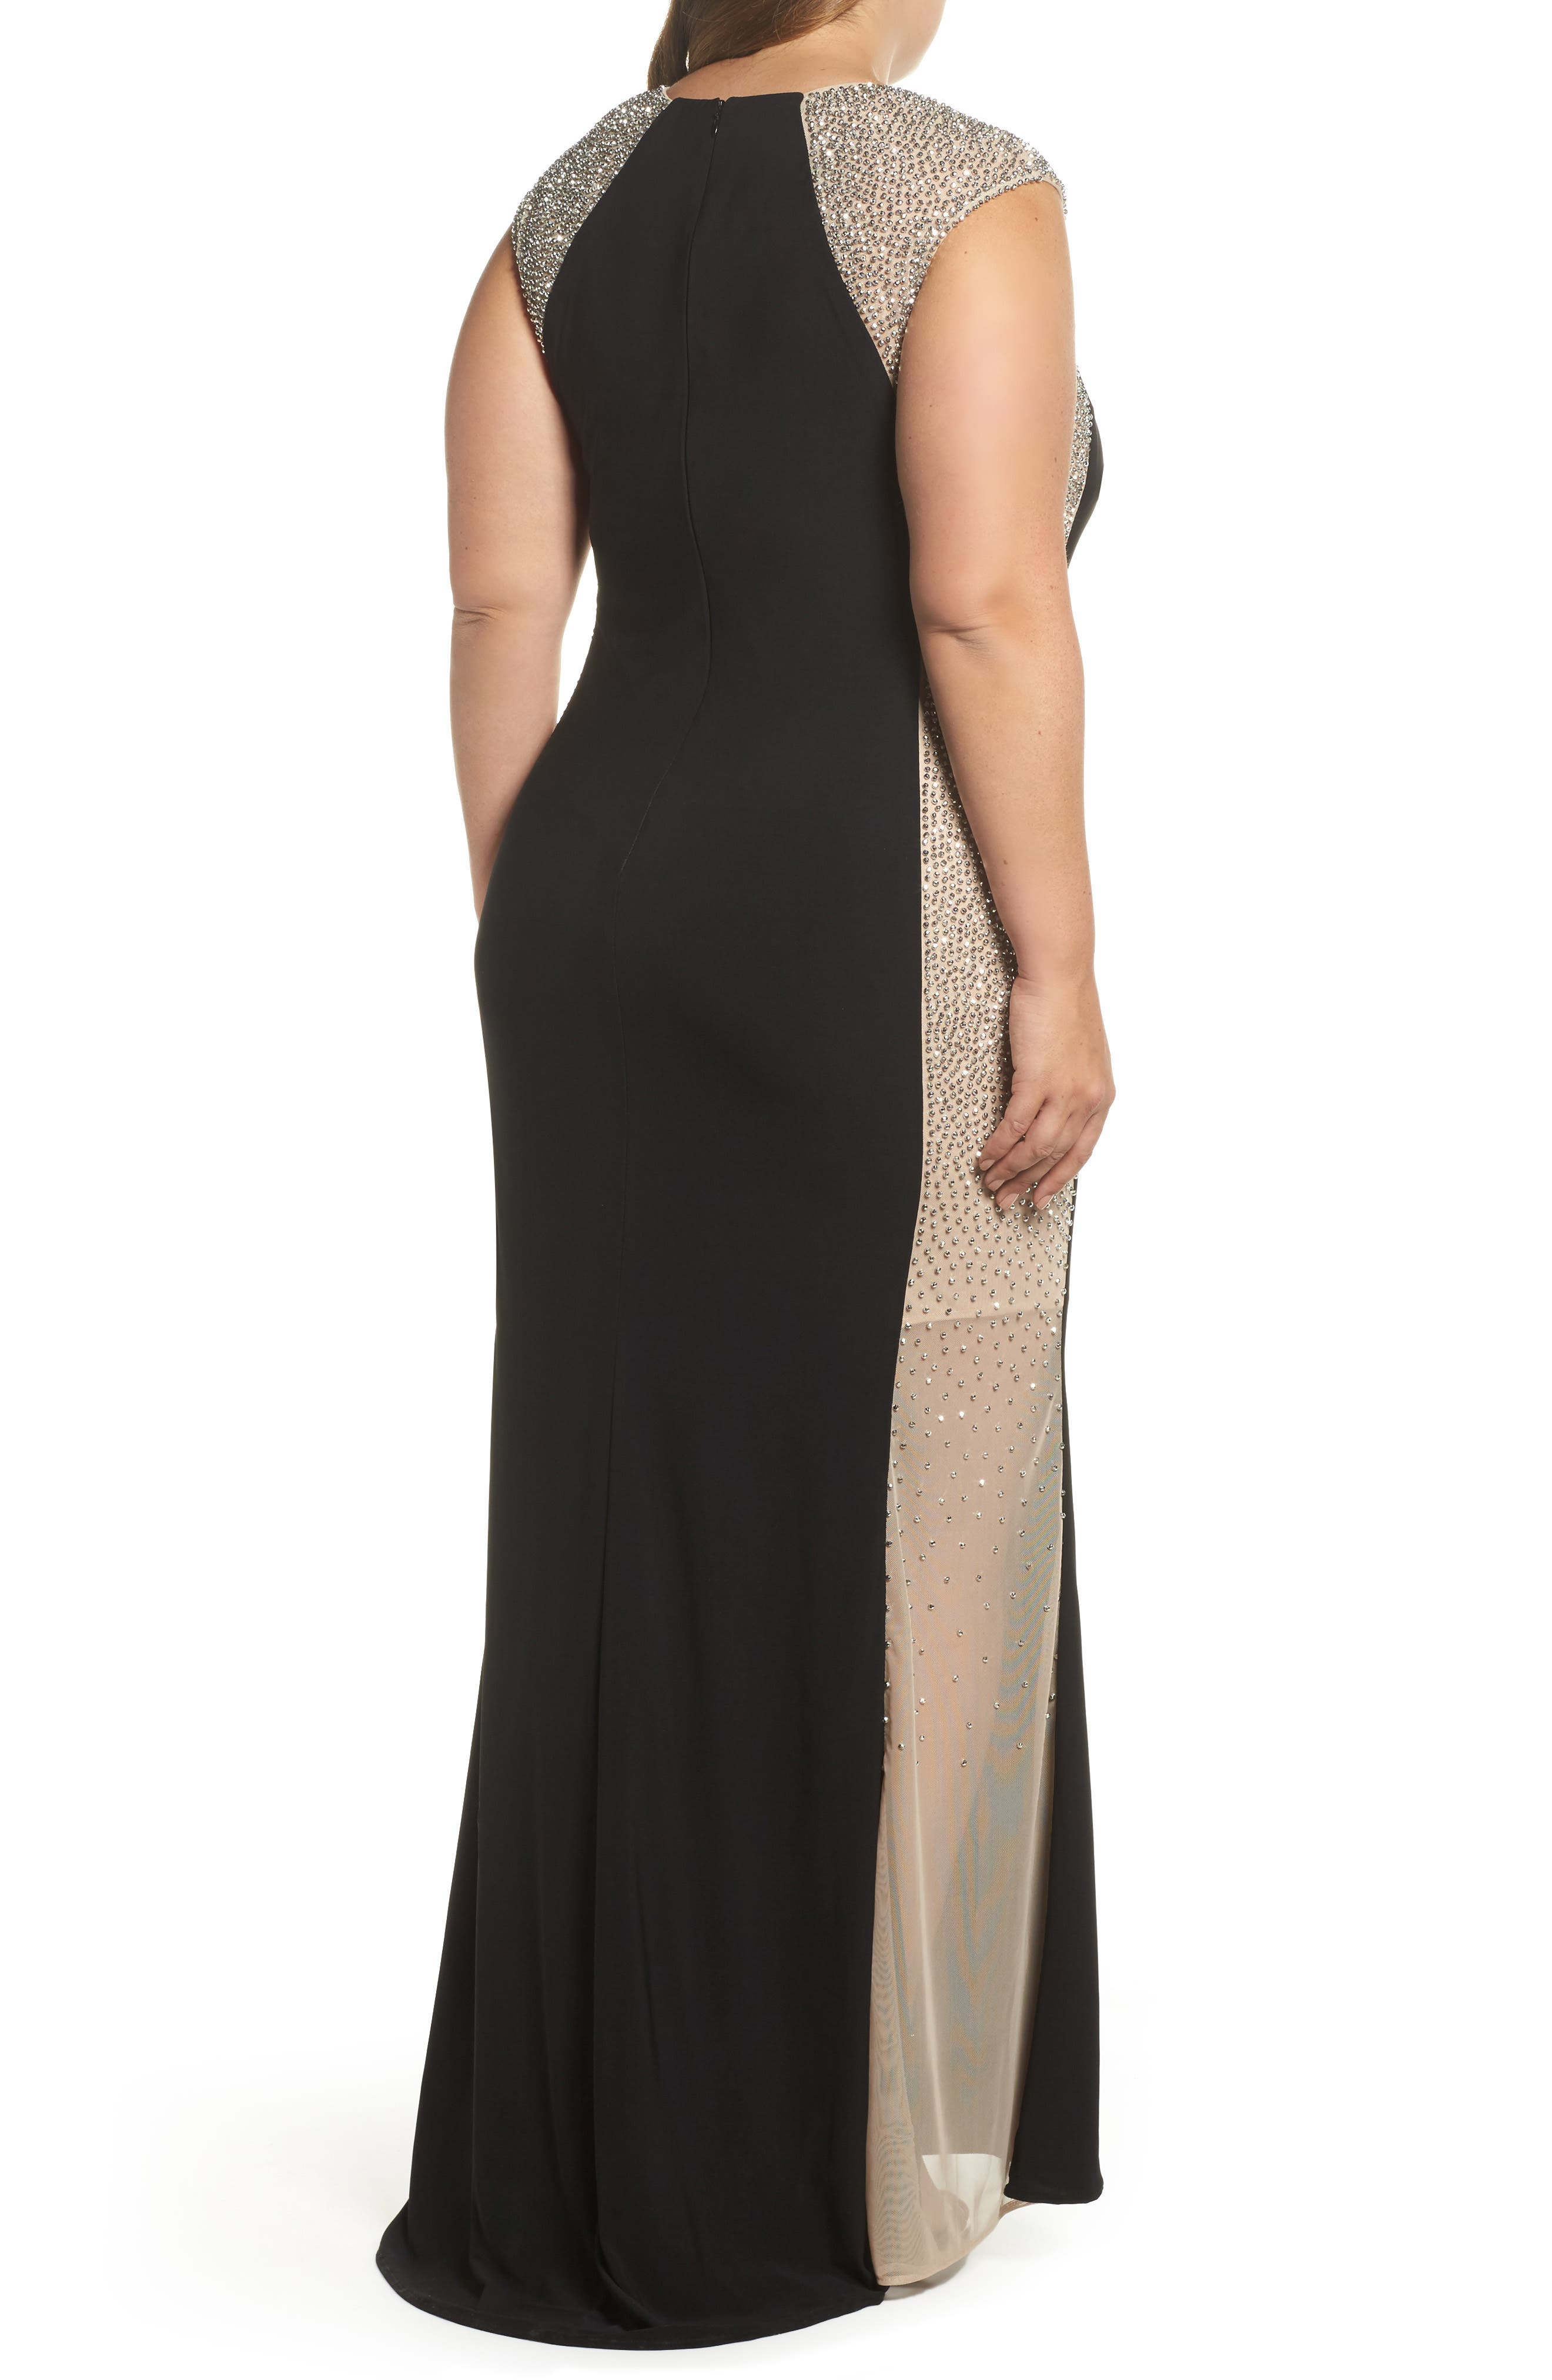 Beaded High Neck Column Gown,                             Alternate thumbnail 2, color,                             Black/ Nude/ Silver